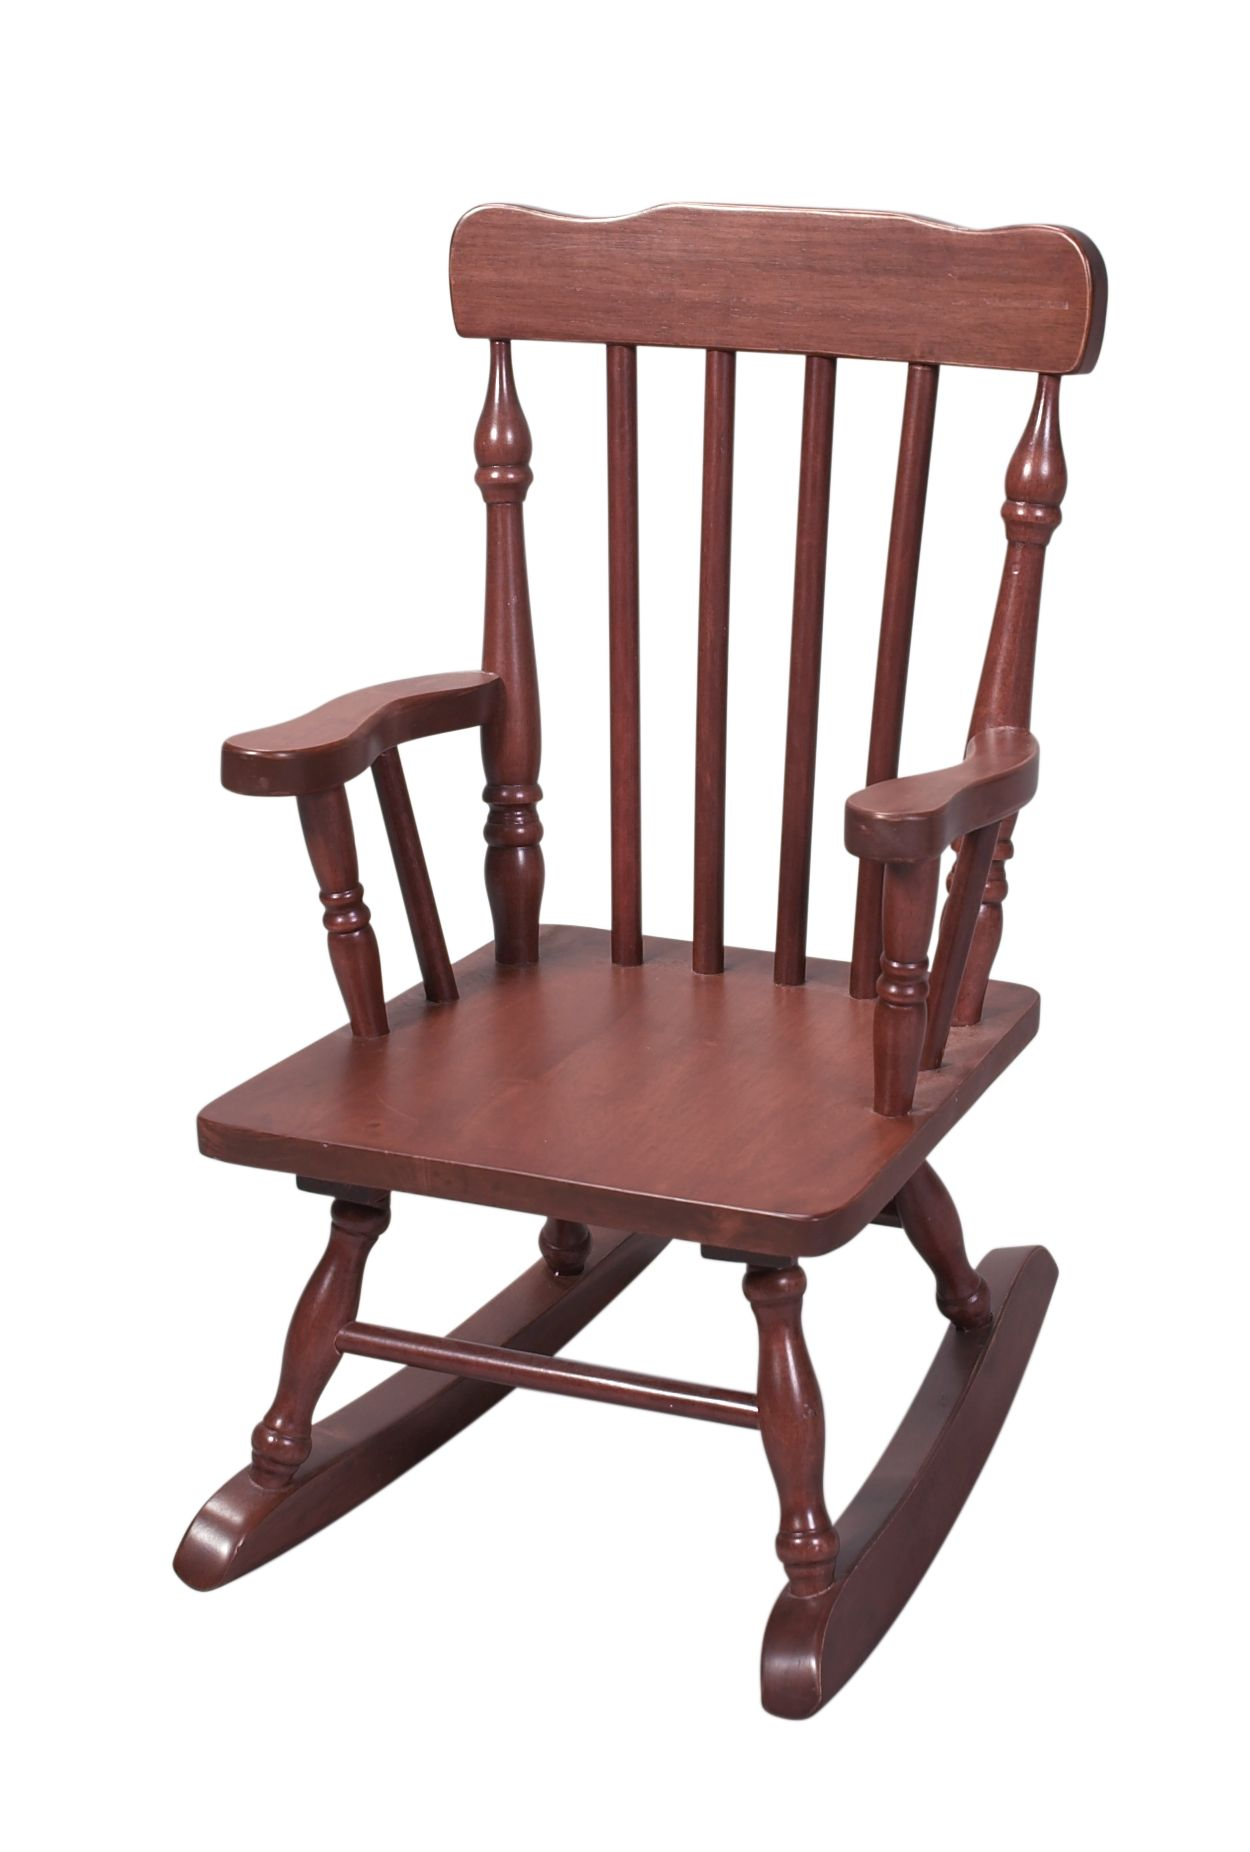 Toddler Wooden Rocking Chair Giftmark Child 39s Spindle Rocking Chair In Cherry Sears